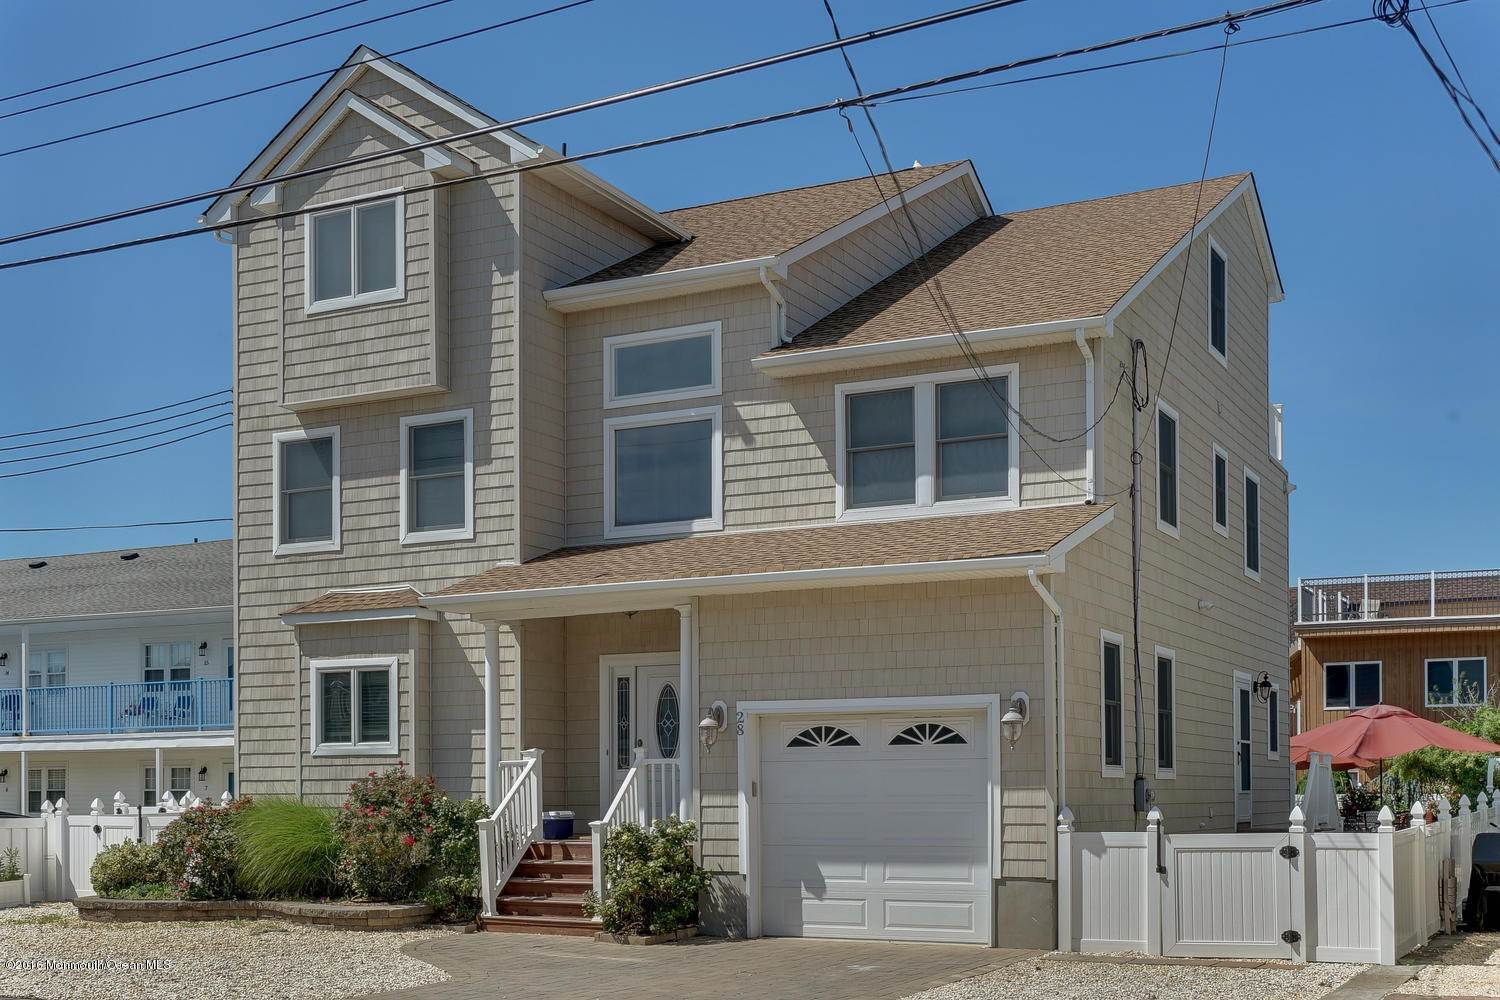 Single Family Homes for Sale at 28 1st Avenue Seaside Park, New Jersey 08752 United States